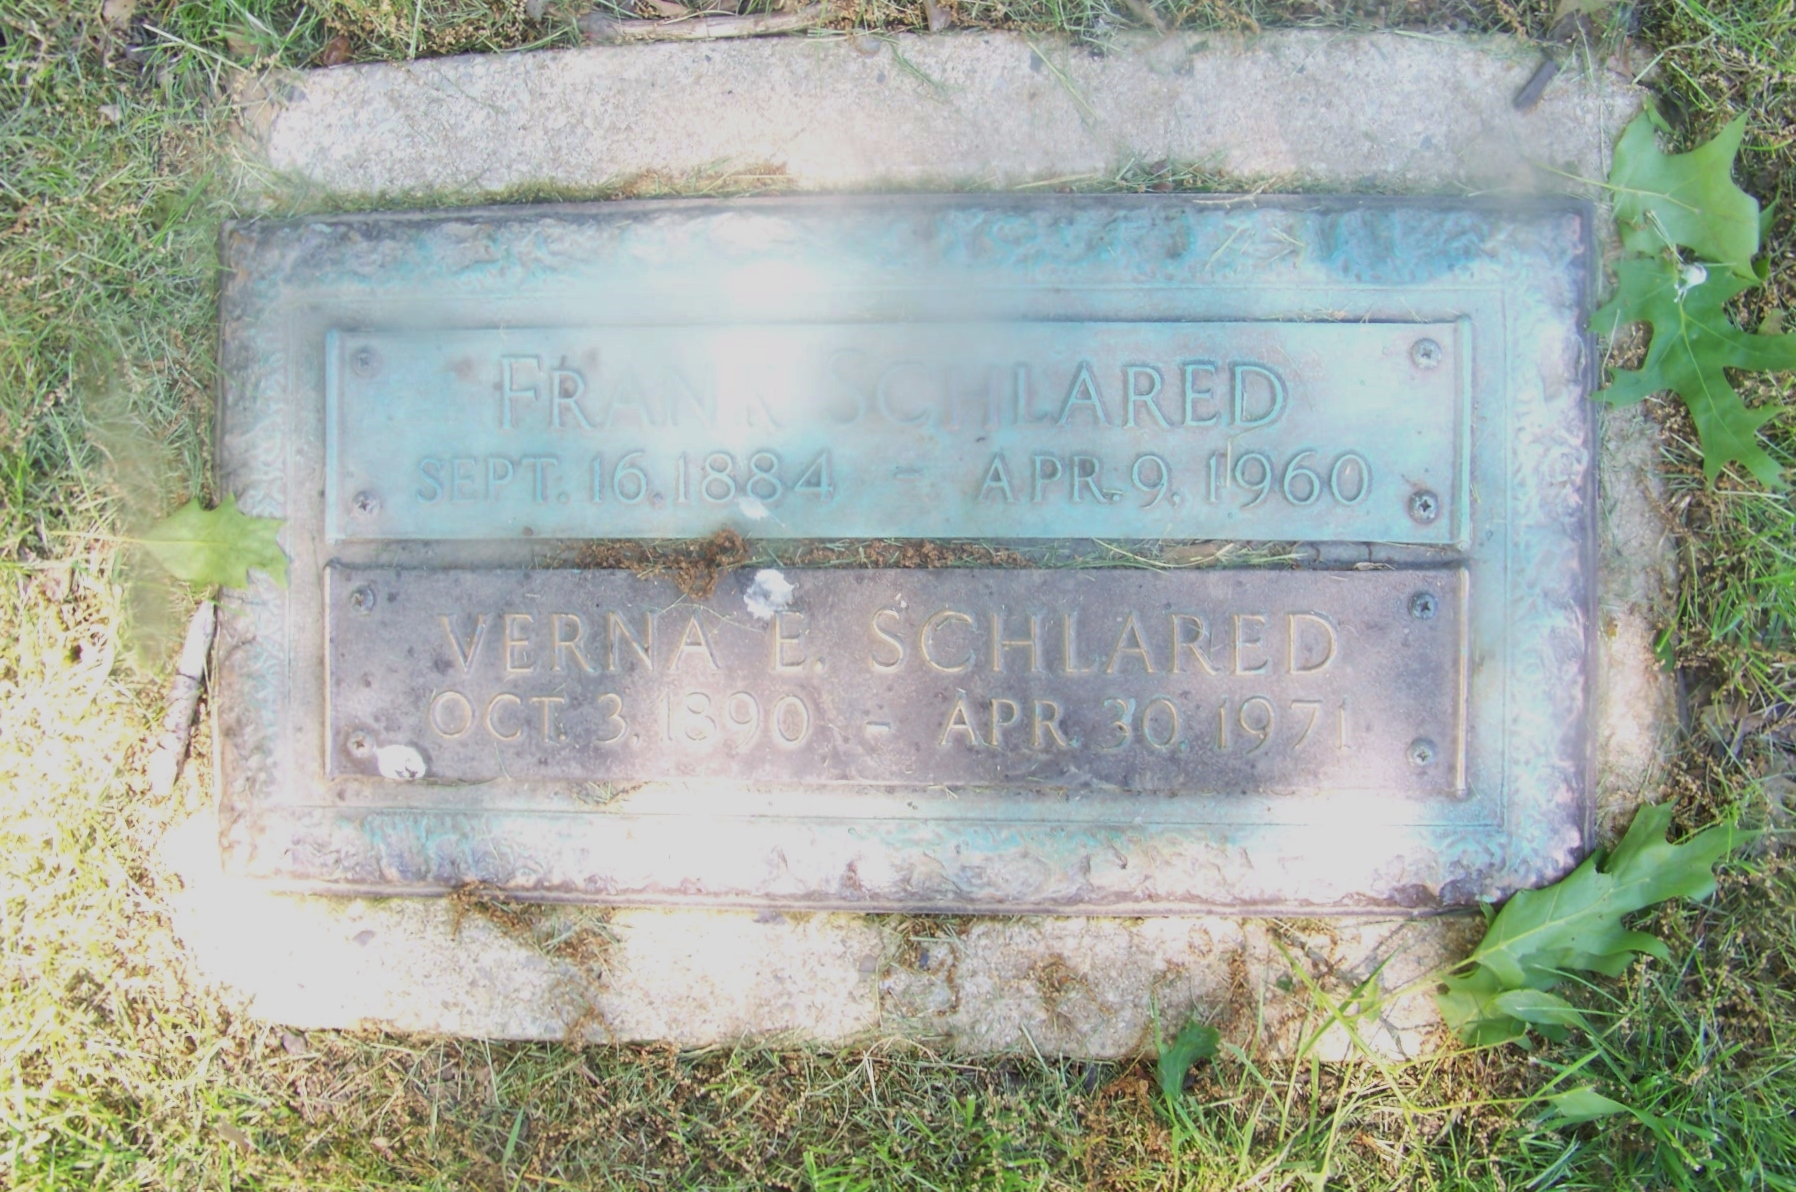 Frank and Verna Schlared Gravestone